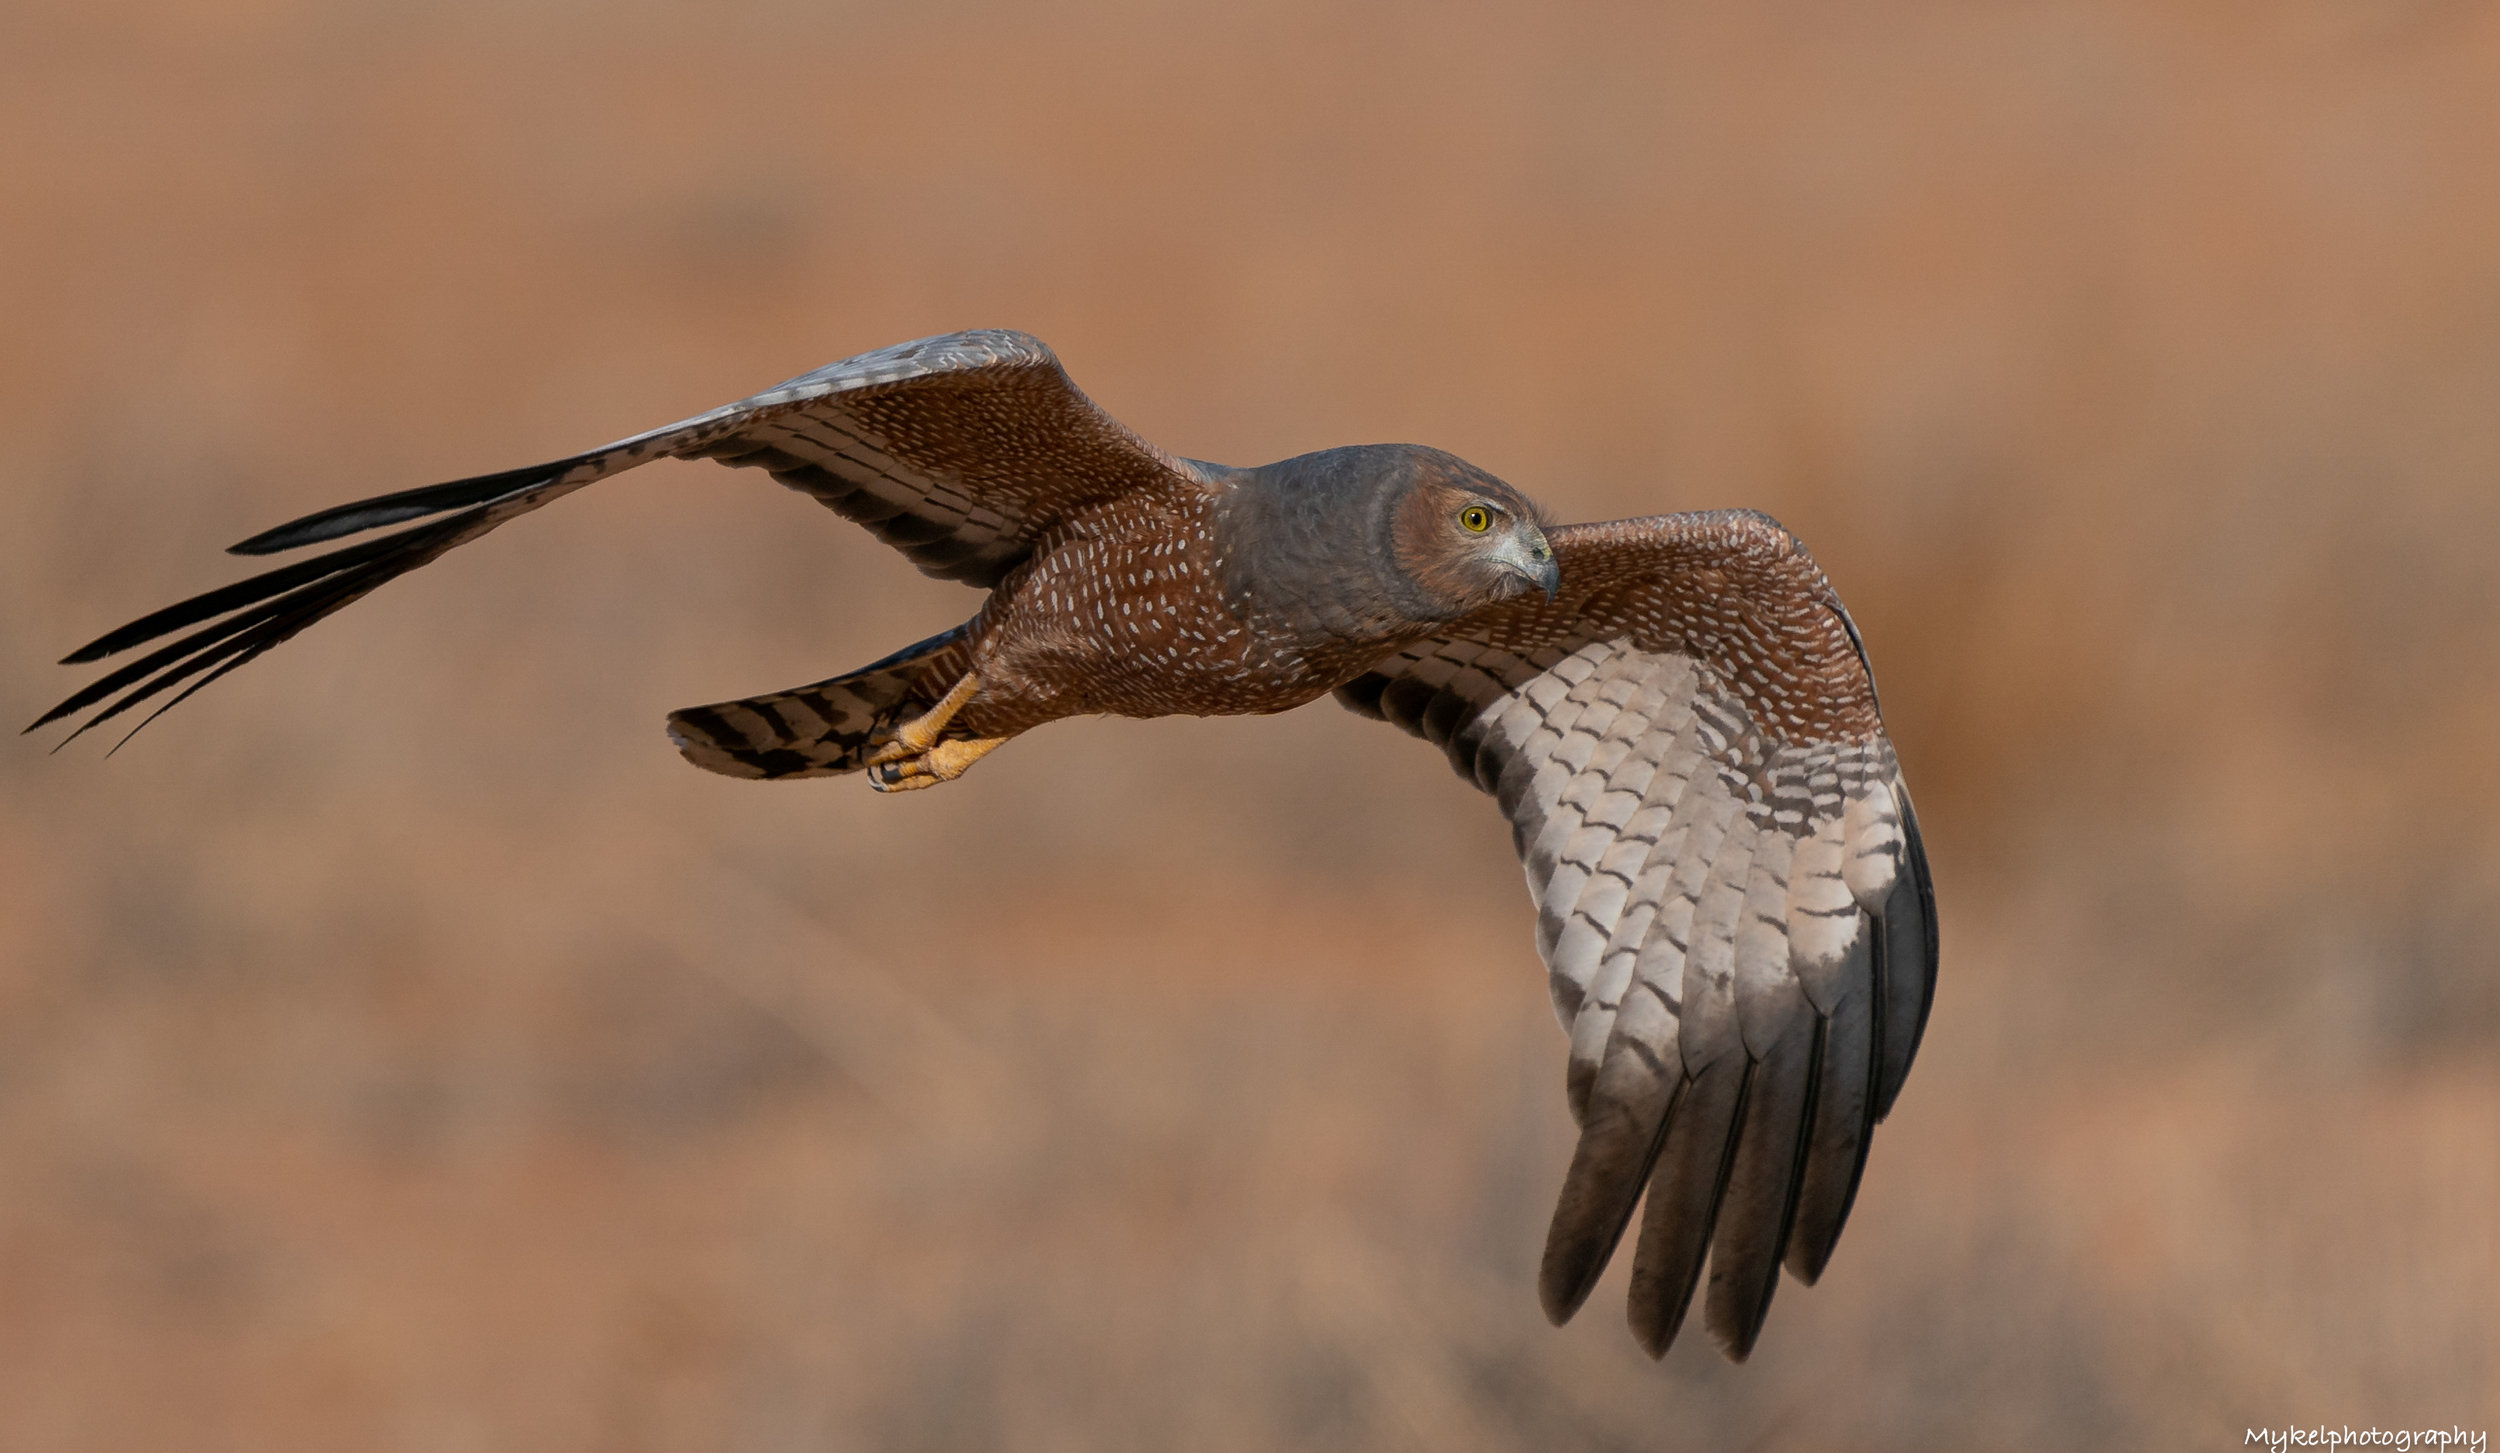 Spotted Harrier  Circus assimilis  Accipitridae  Although it may be recorded almost anywhere in mainland Australia, the stronghold of the Spotted Harrier is the arid and semi-arid zones. By gliding and soaring, harriers slowly quarter above flat or undulating landscapes covered with low or open vegetation, on the lookout for small birds and mammals on the ground, and then dive or drop onto their quarry.